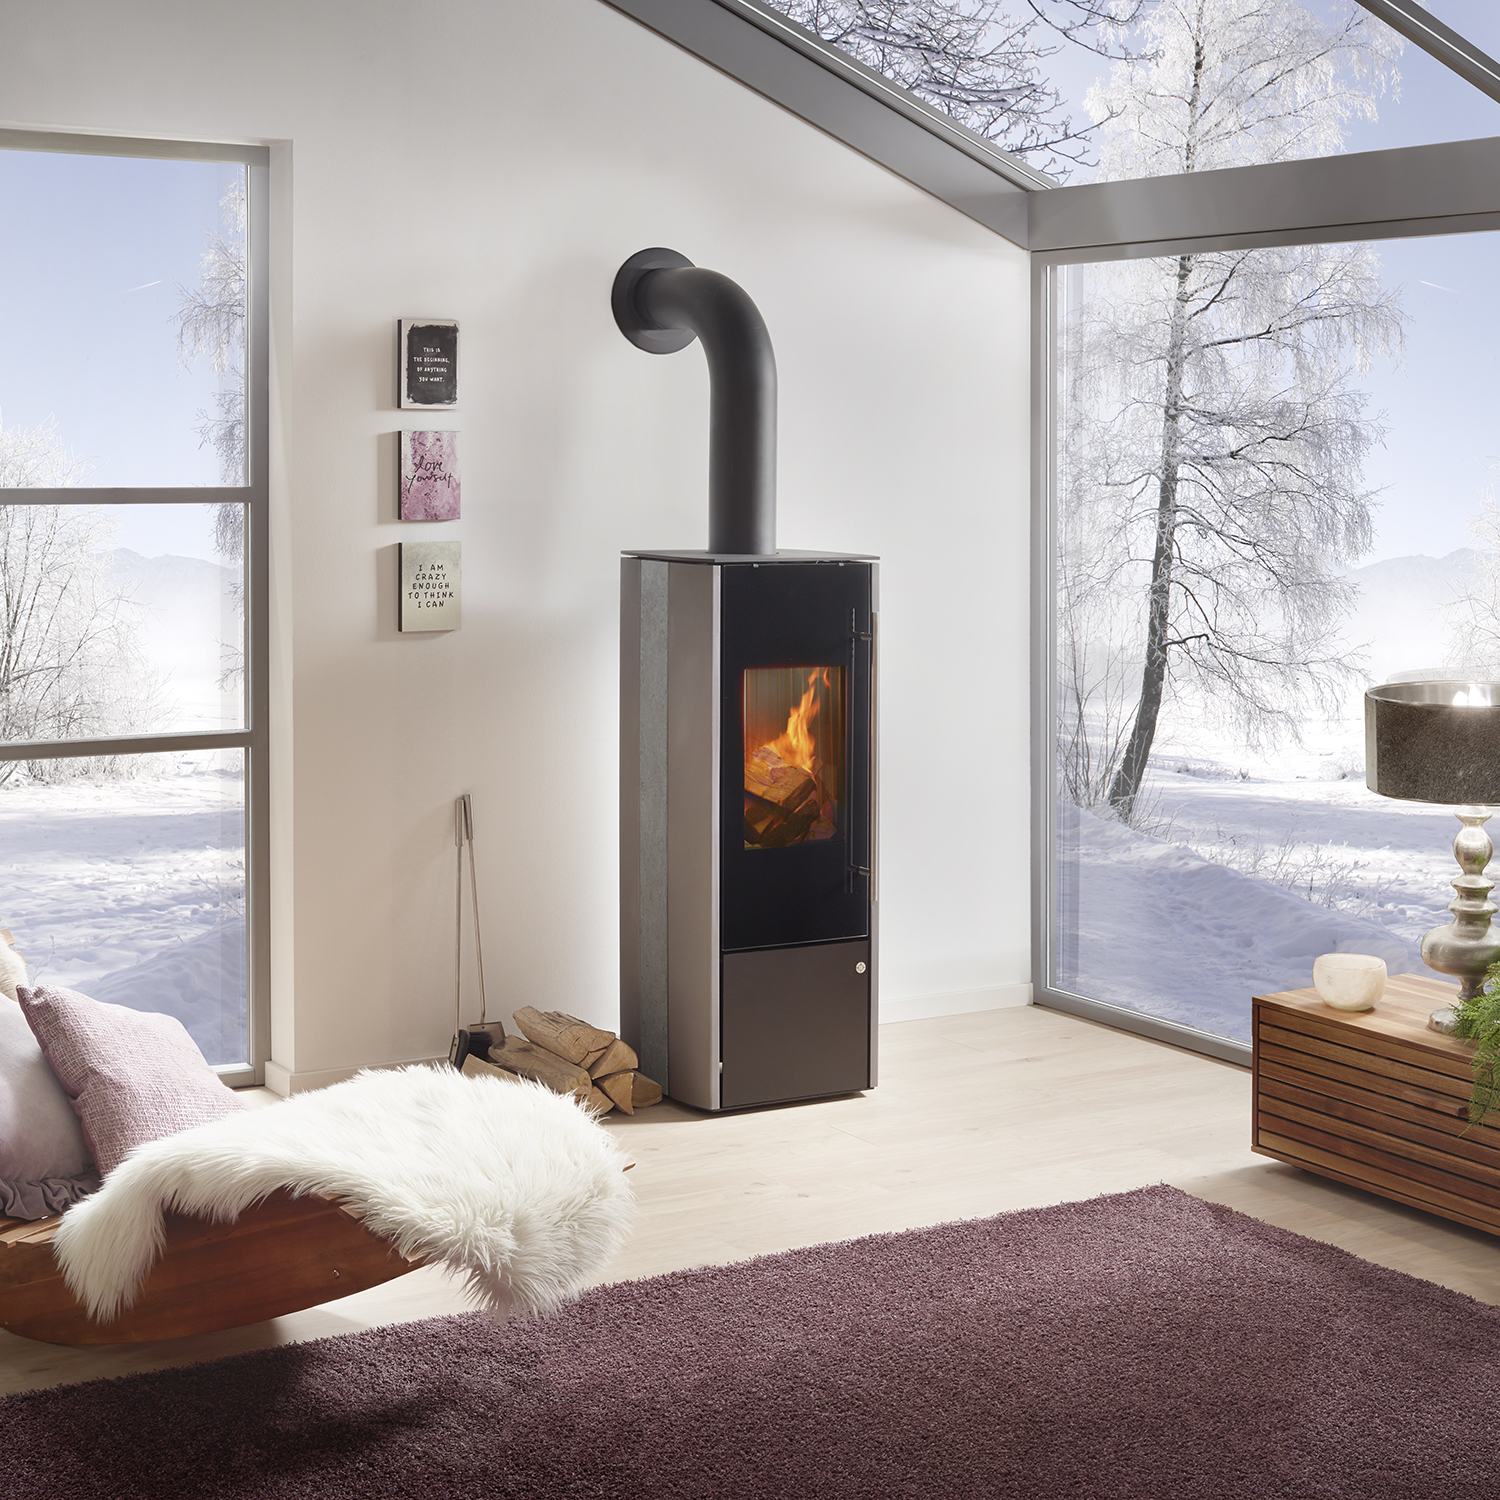 olsberg petacas compact 5 0 kw luftgef hrt kamin fen. Black Bedroom Furniture Sets. Home Design Ideas